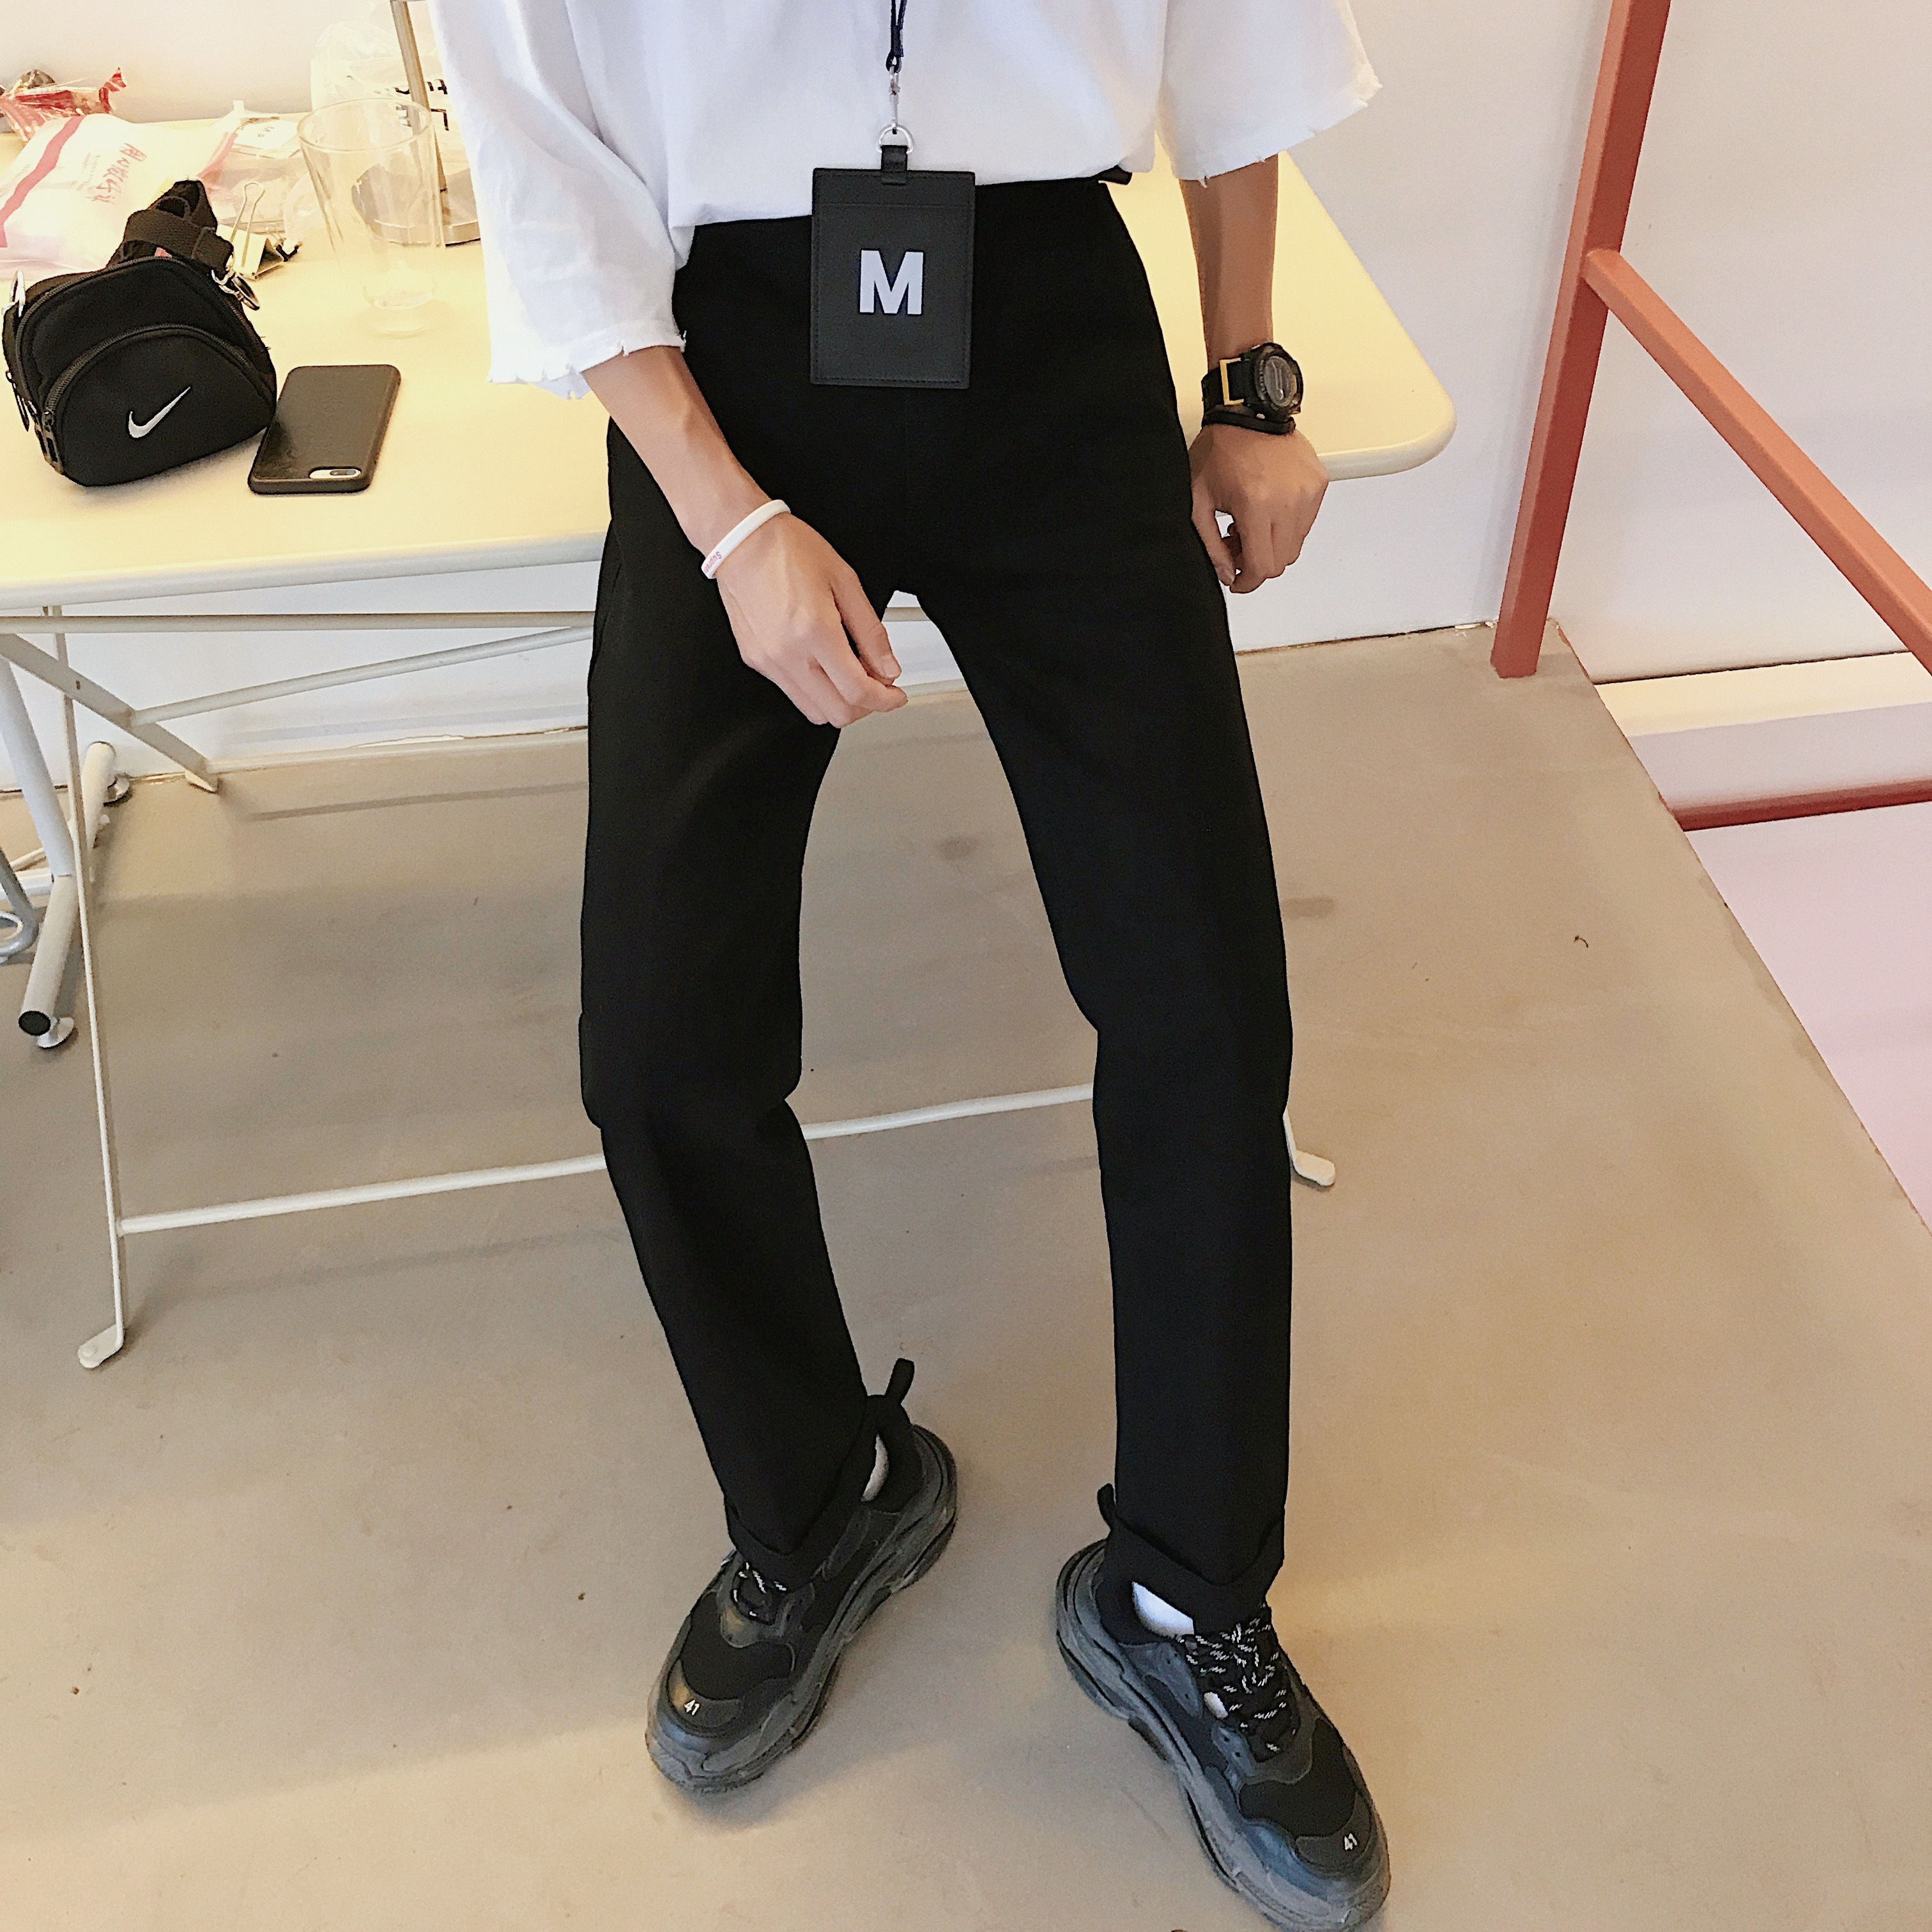 2019 Spring Original stretch slim fit Jeans New Men Directly Canister Bound Feet Jeans Straight Classic Loose Solid Black Pants in Jeans from Men 39 s Clothing